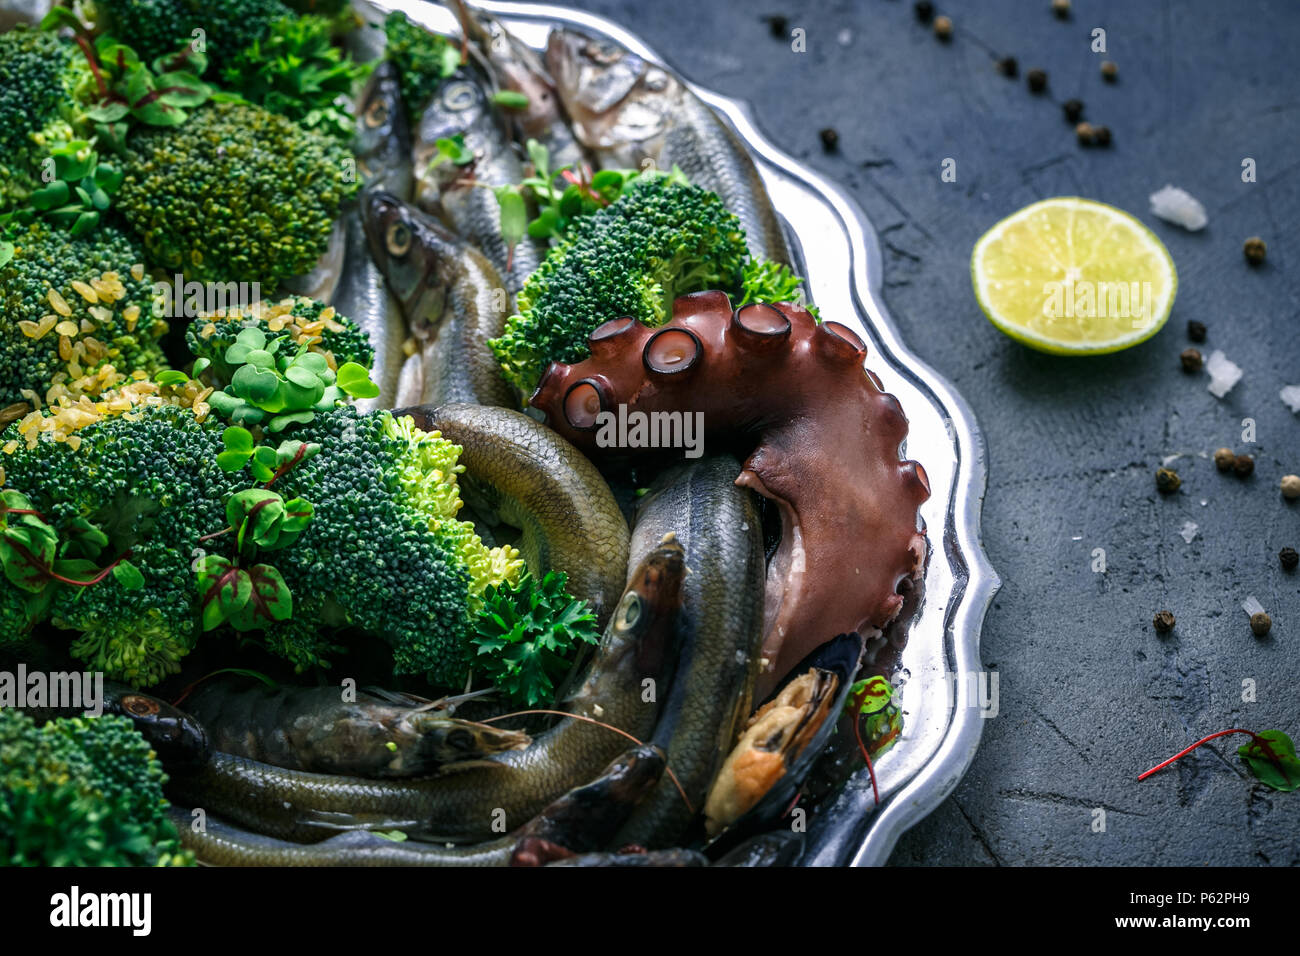 Close view of fresh seafood. Fish, shrimp, octopus and mussels. - Stock Image